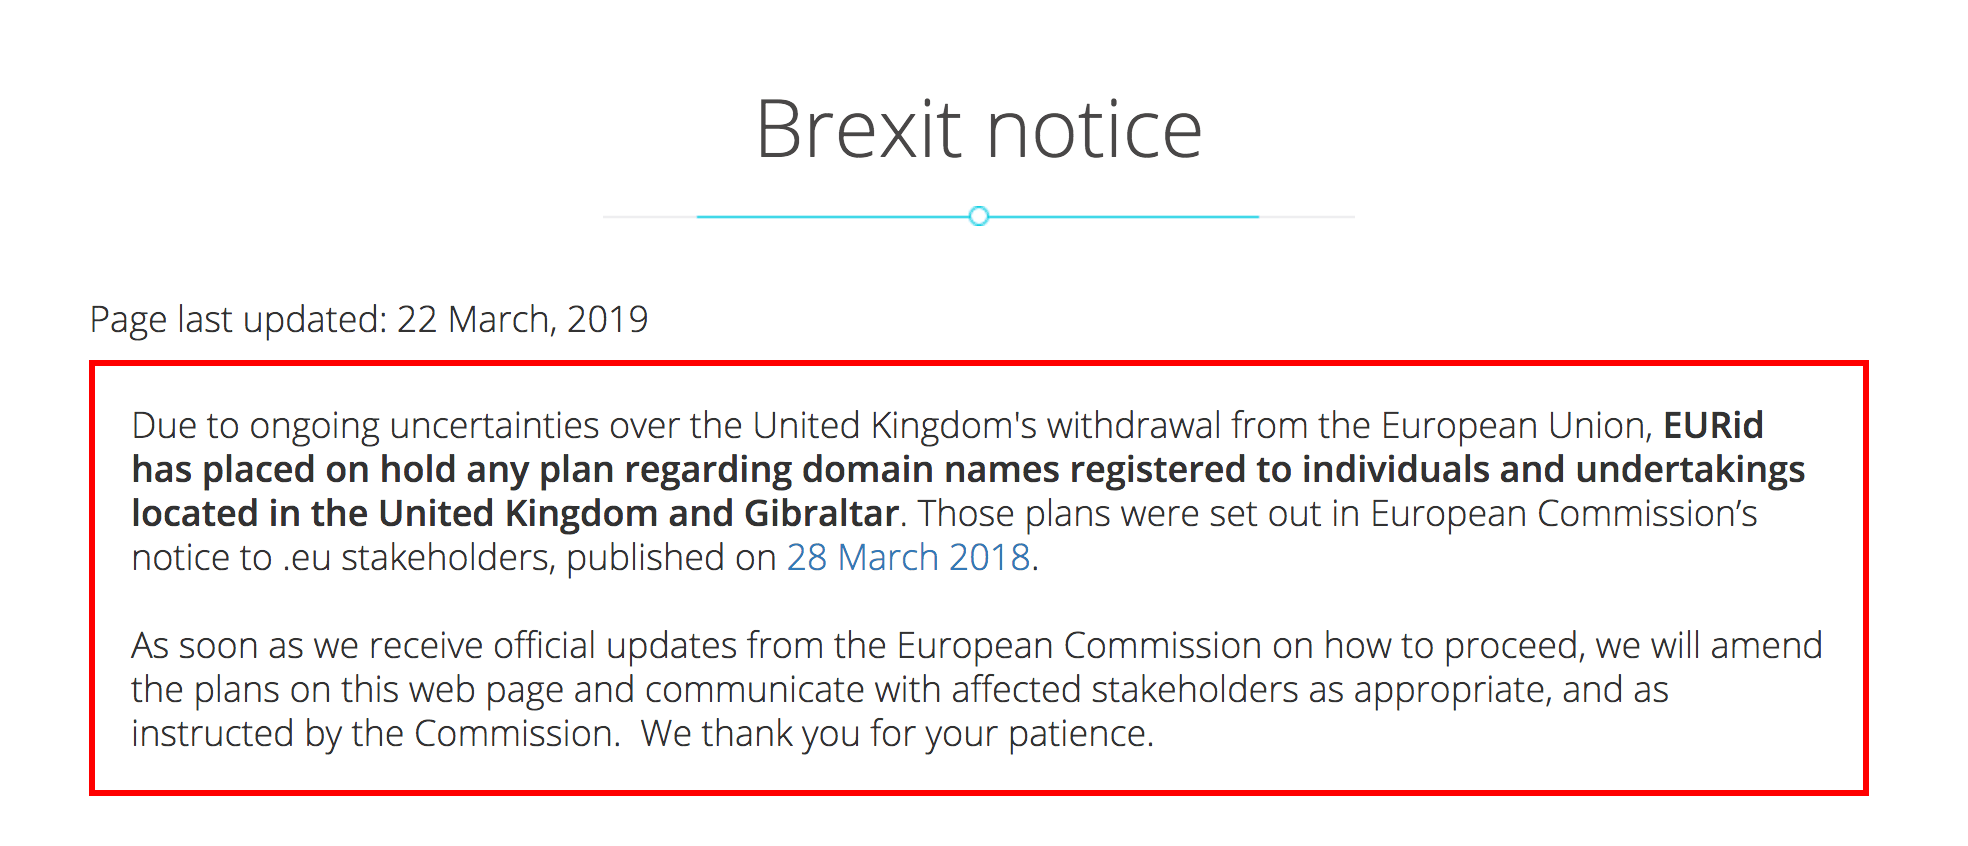 Brexit Notice: Due to ongoing uncertainties over the United Kingdom's withdrawal from the European Union, EURid has placed on hold any plan regarding domain names registered to individuals and undertakings located in the United Kingdom and Gibraltar. Those plans were set out in European Commission's notice to .eu stakeholders, published on 28 March 2018. As soon as we receive official updates from the European Commission on how to proceed, we will amend the plans on this web page and communicate with affected stakeholders as appropriate, and as instructed by the Commission. We thank you for your patience.